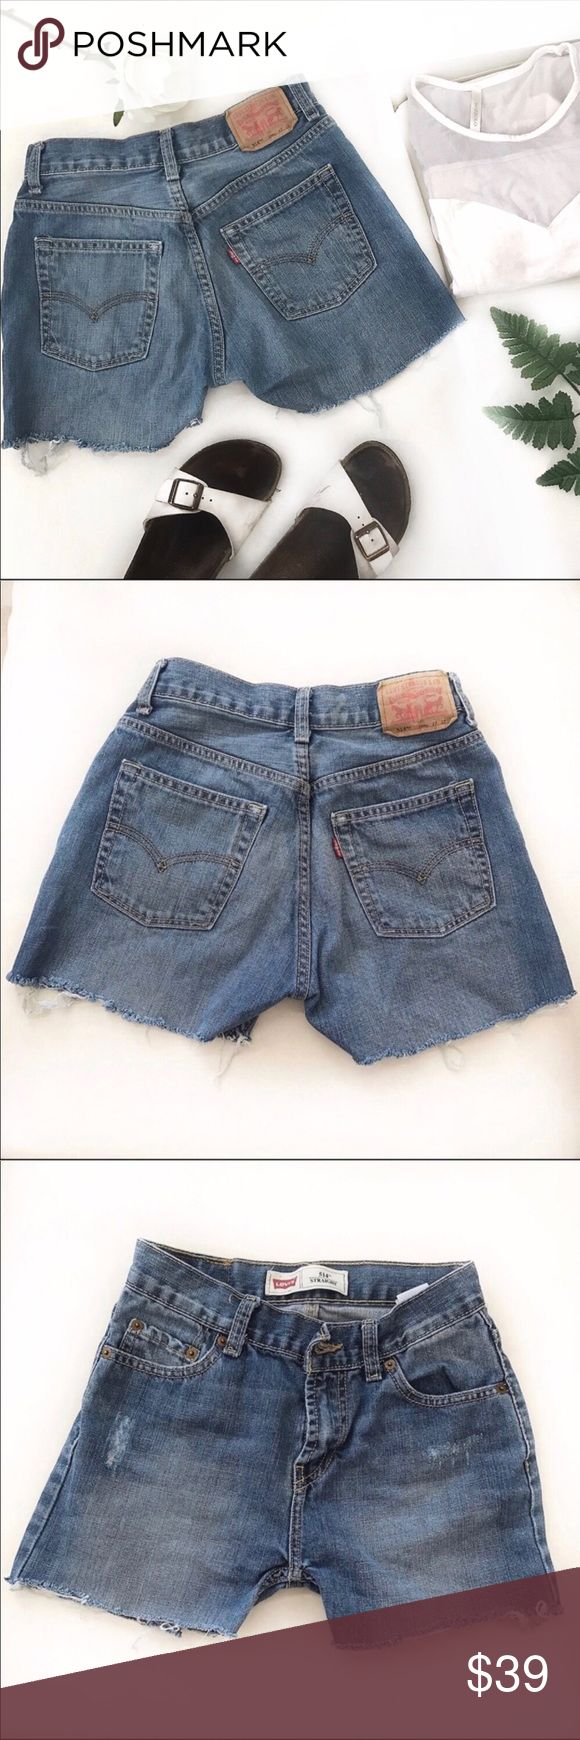 """LEVI'S 514 jeans cut-off shorts size 24 Vintage feel. Classic and trendy at the same time. Keep up with the Jenners and Hadids with this timeless Levi's cutoff jean shorts.  Waist 24"""" Rise 8.5"""" Inseam 3""""  Tags: vintage , distressed , mom jeans , reformation , re/done , wedgie , jenner , hadid , rare , cutoff shorts , summer Halloween costume Levi's Shorts Jean Shorts"""